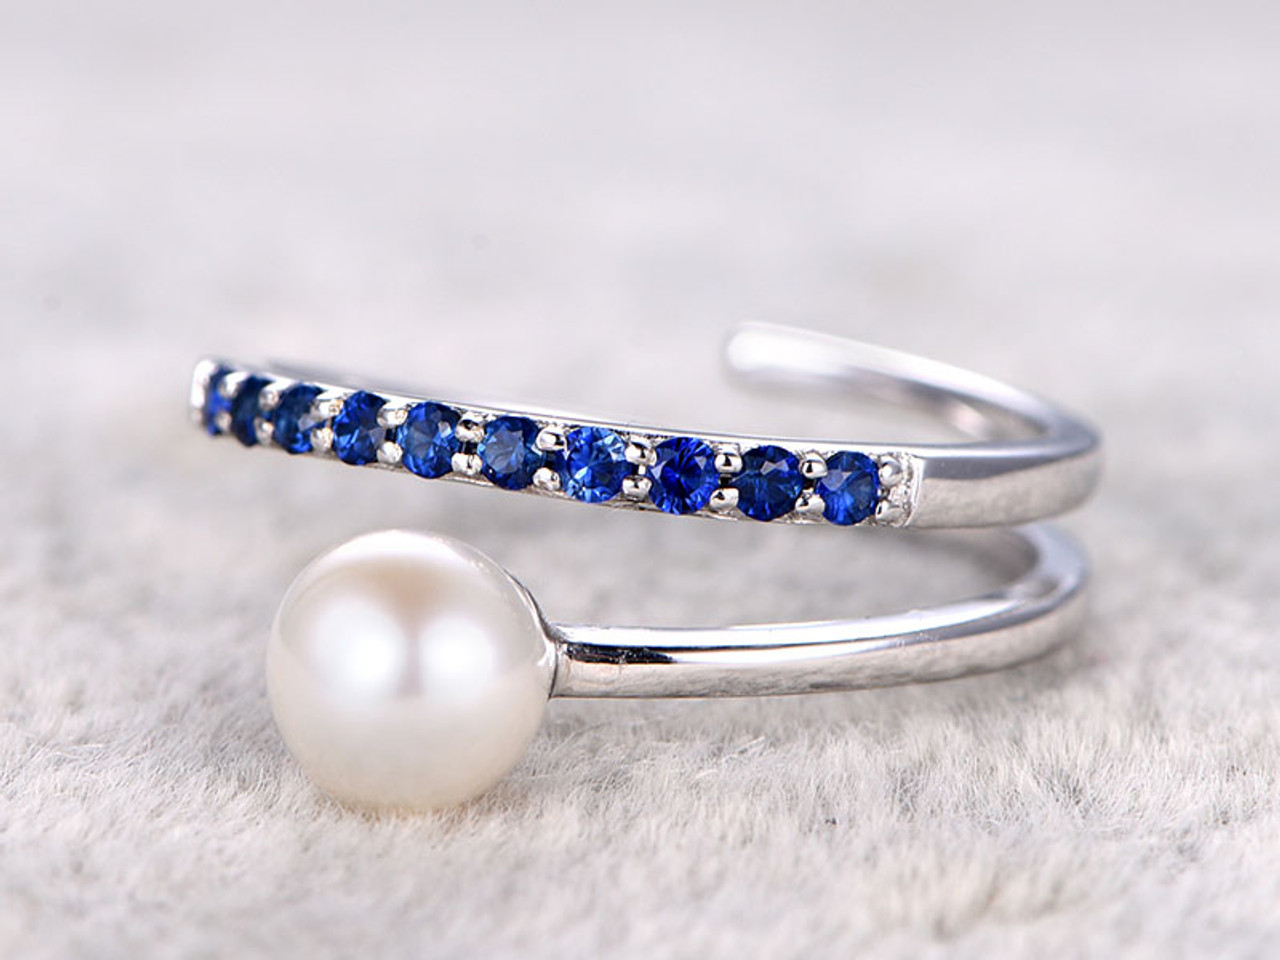 style jewelry vintage low jtd profile shop swirl design pearls classic jewelrythis ring engagement solitaire